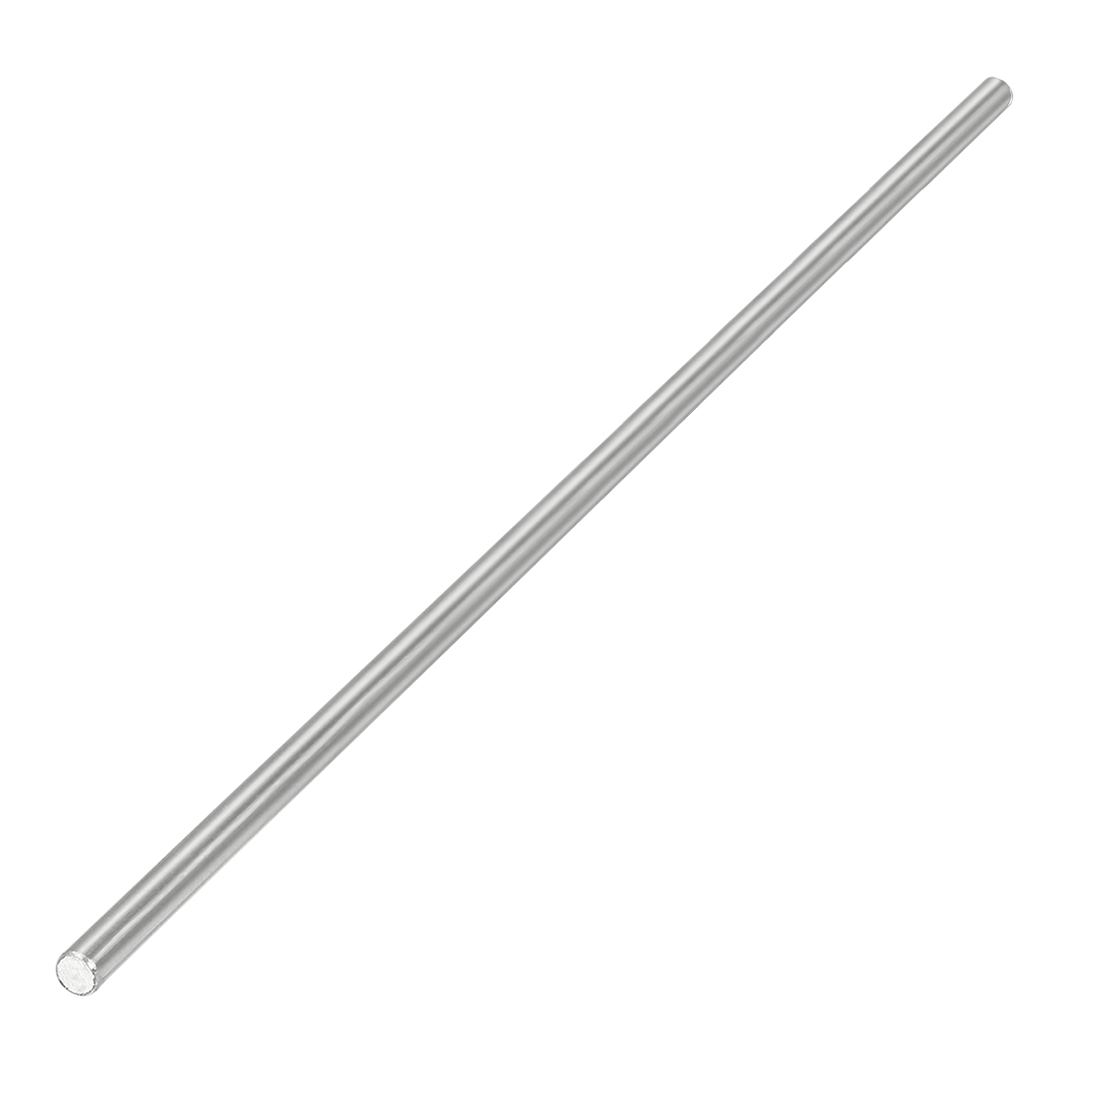 2mm Dia 160mm Length Stainless Steel Solid Round Shaft Rod for RC Model Toy